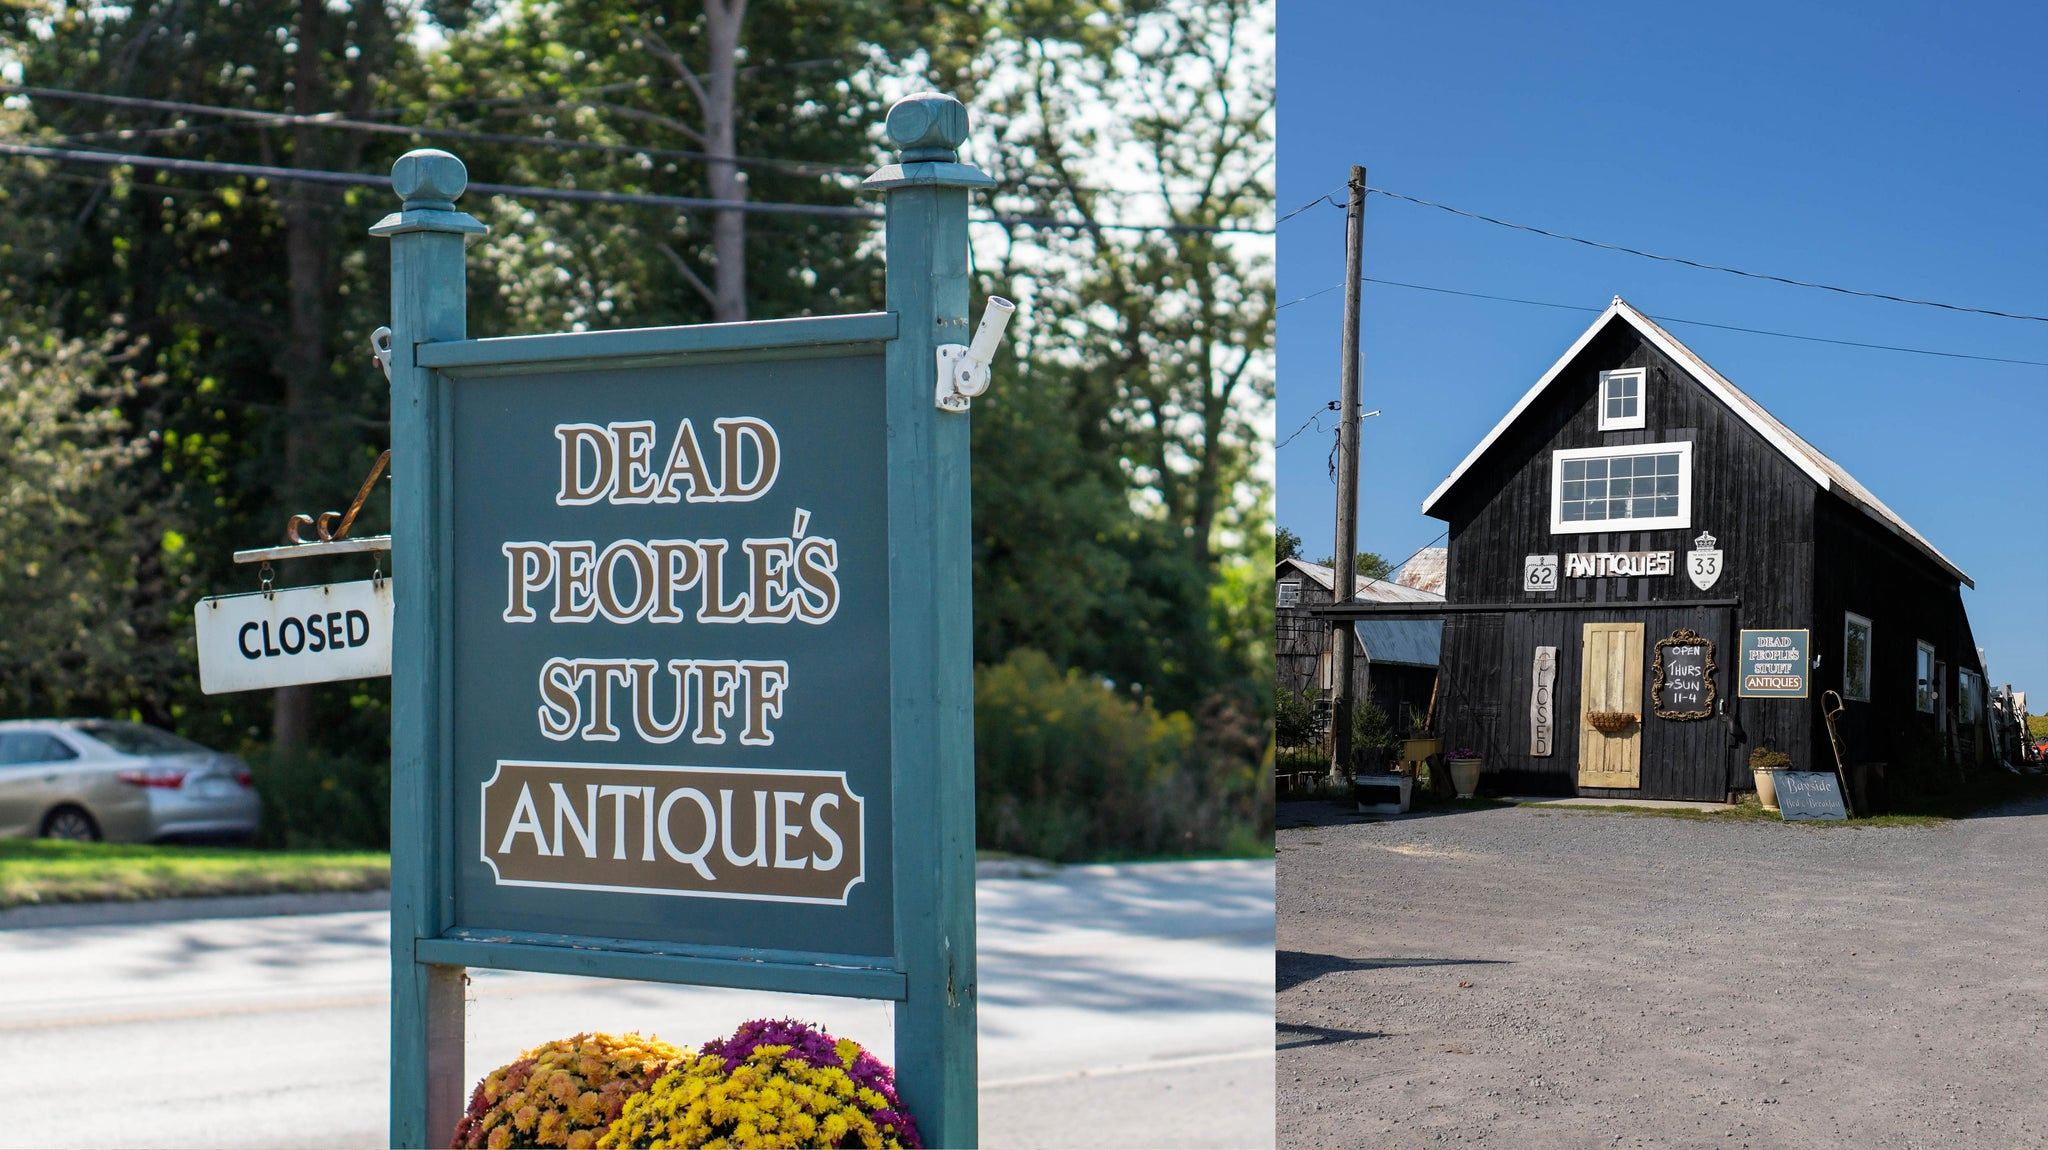 Dead People's Stuff Antiques Shop in Prince Edward County